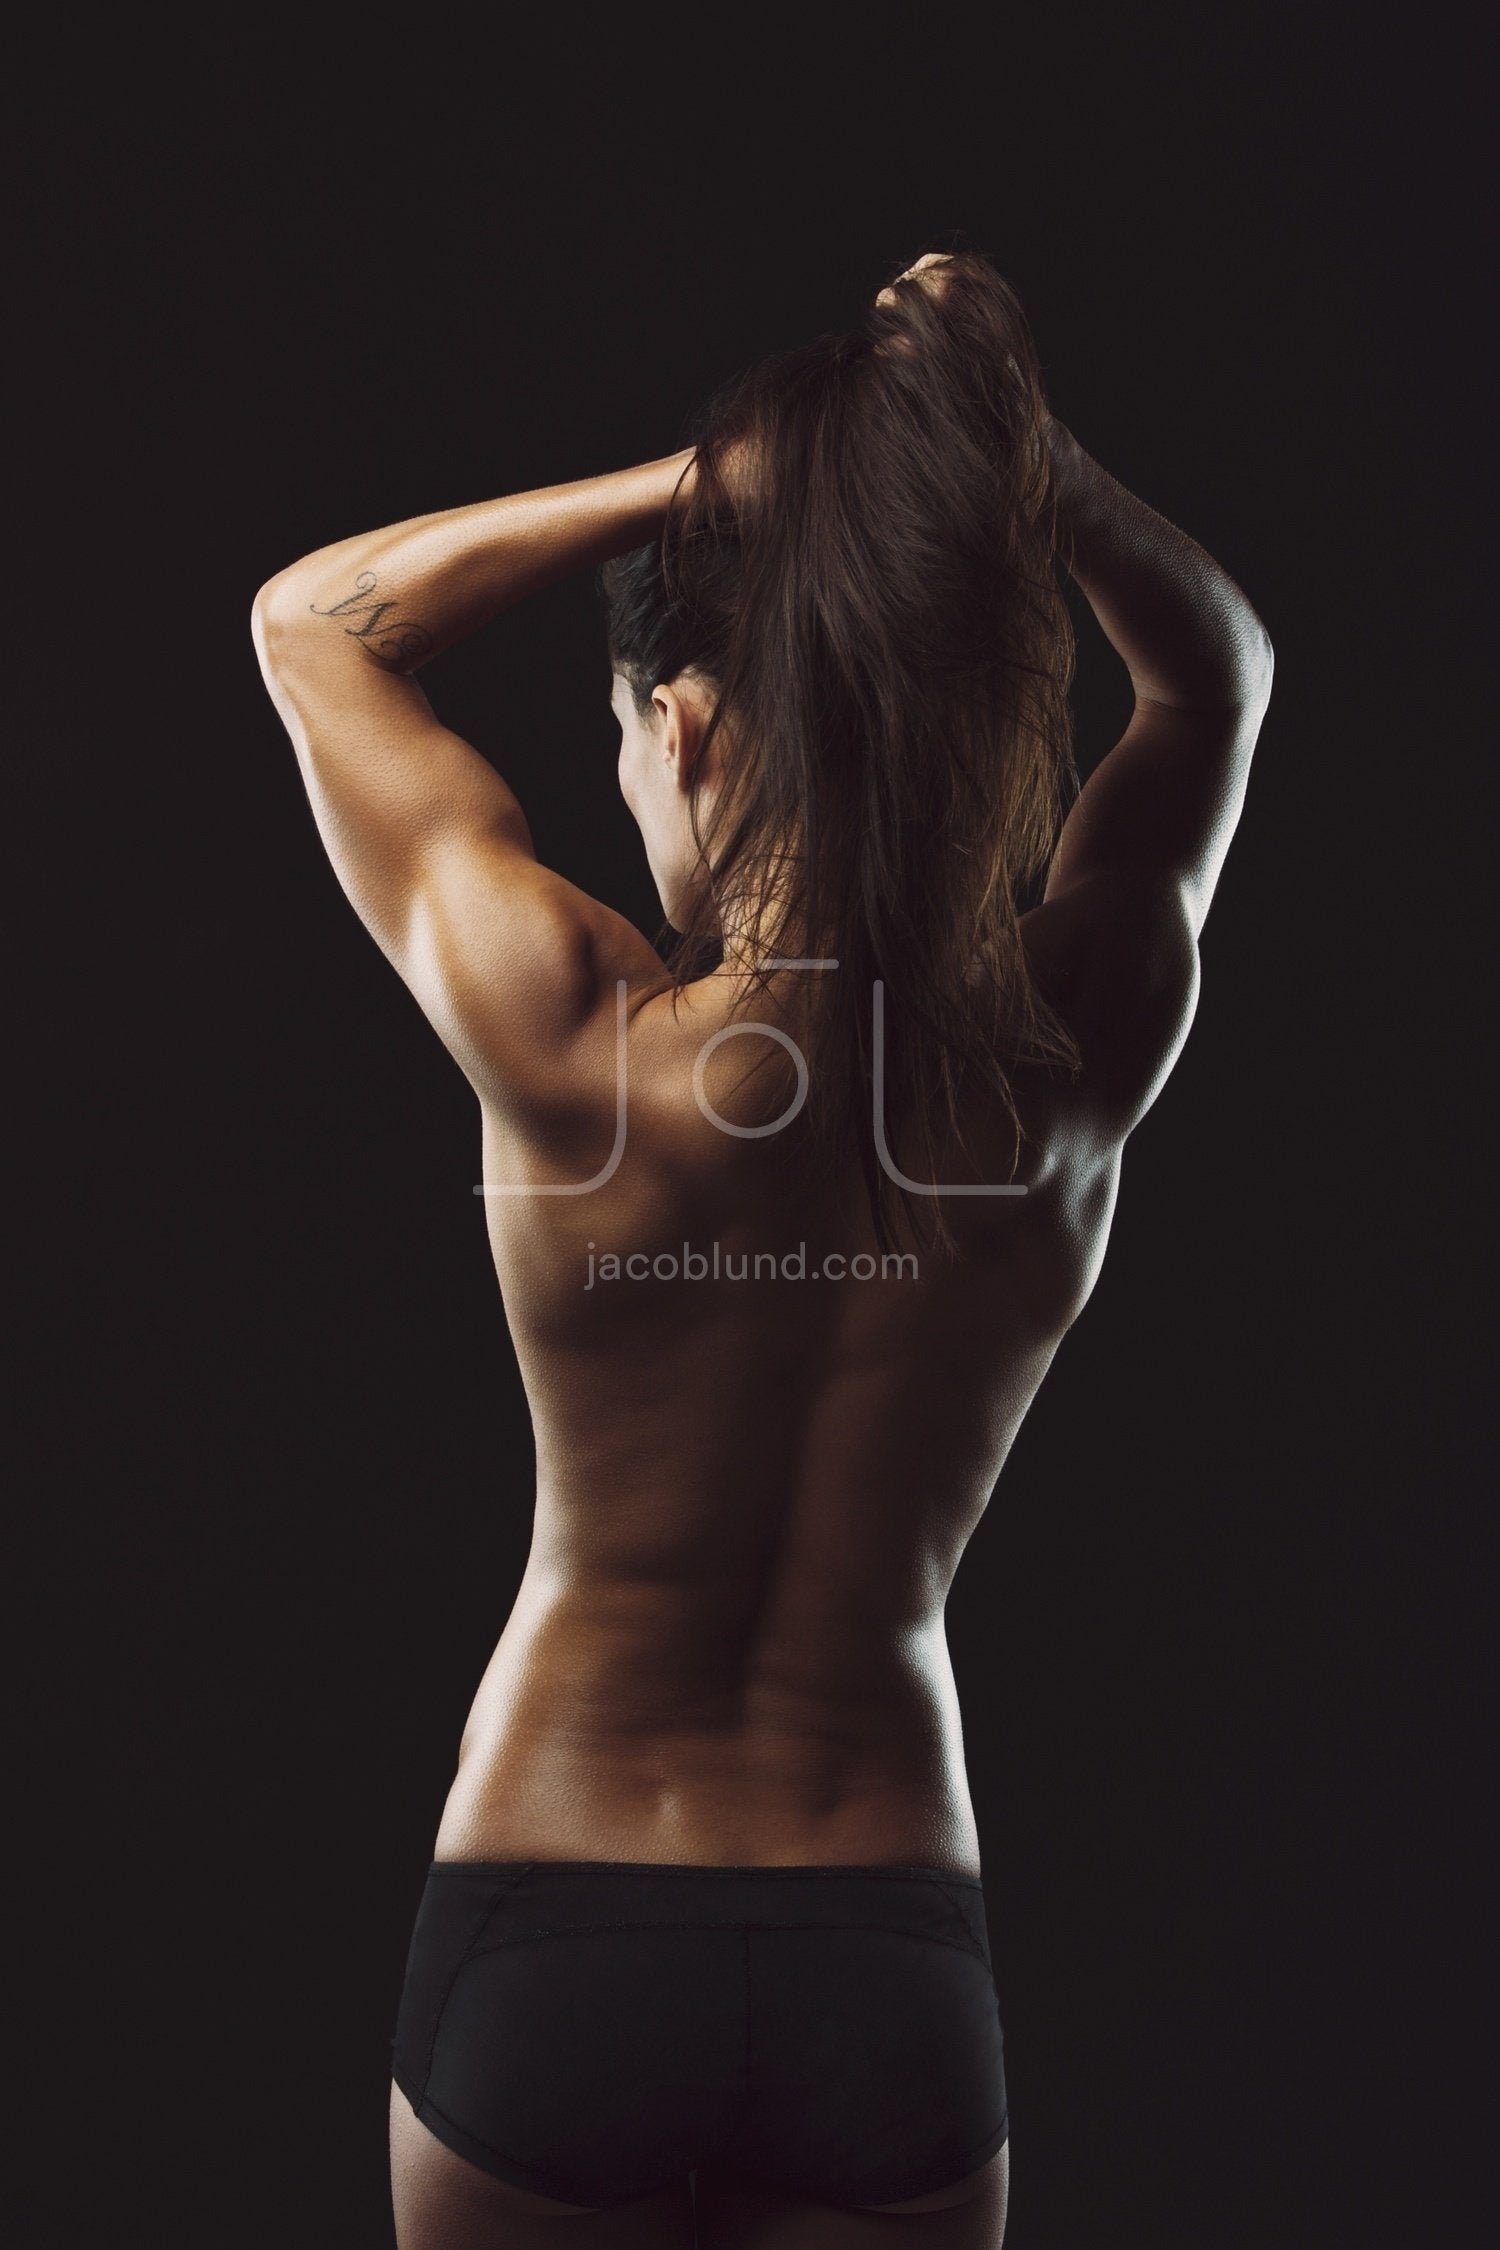 Fit And Sexy Female With Perfect Body Jacob Lund Photography Store Premium Stock Photo From ballerinas to weightlifters and celebrity trainers, these stylish women show off the best workout motivation on instagram. fit and sexy female with perfect body